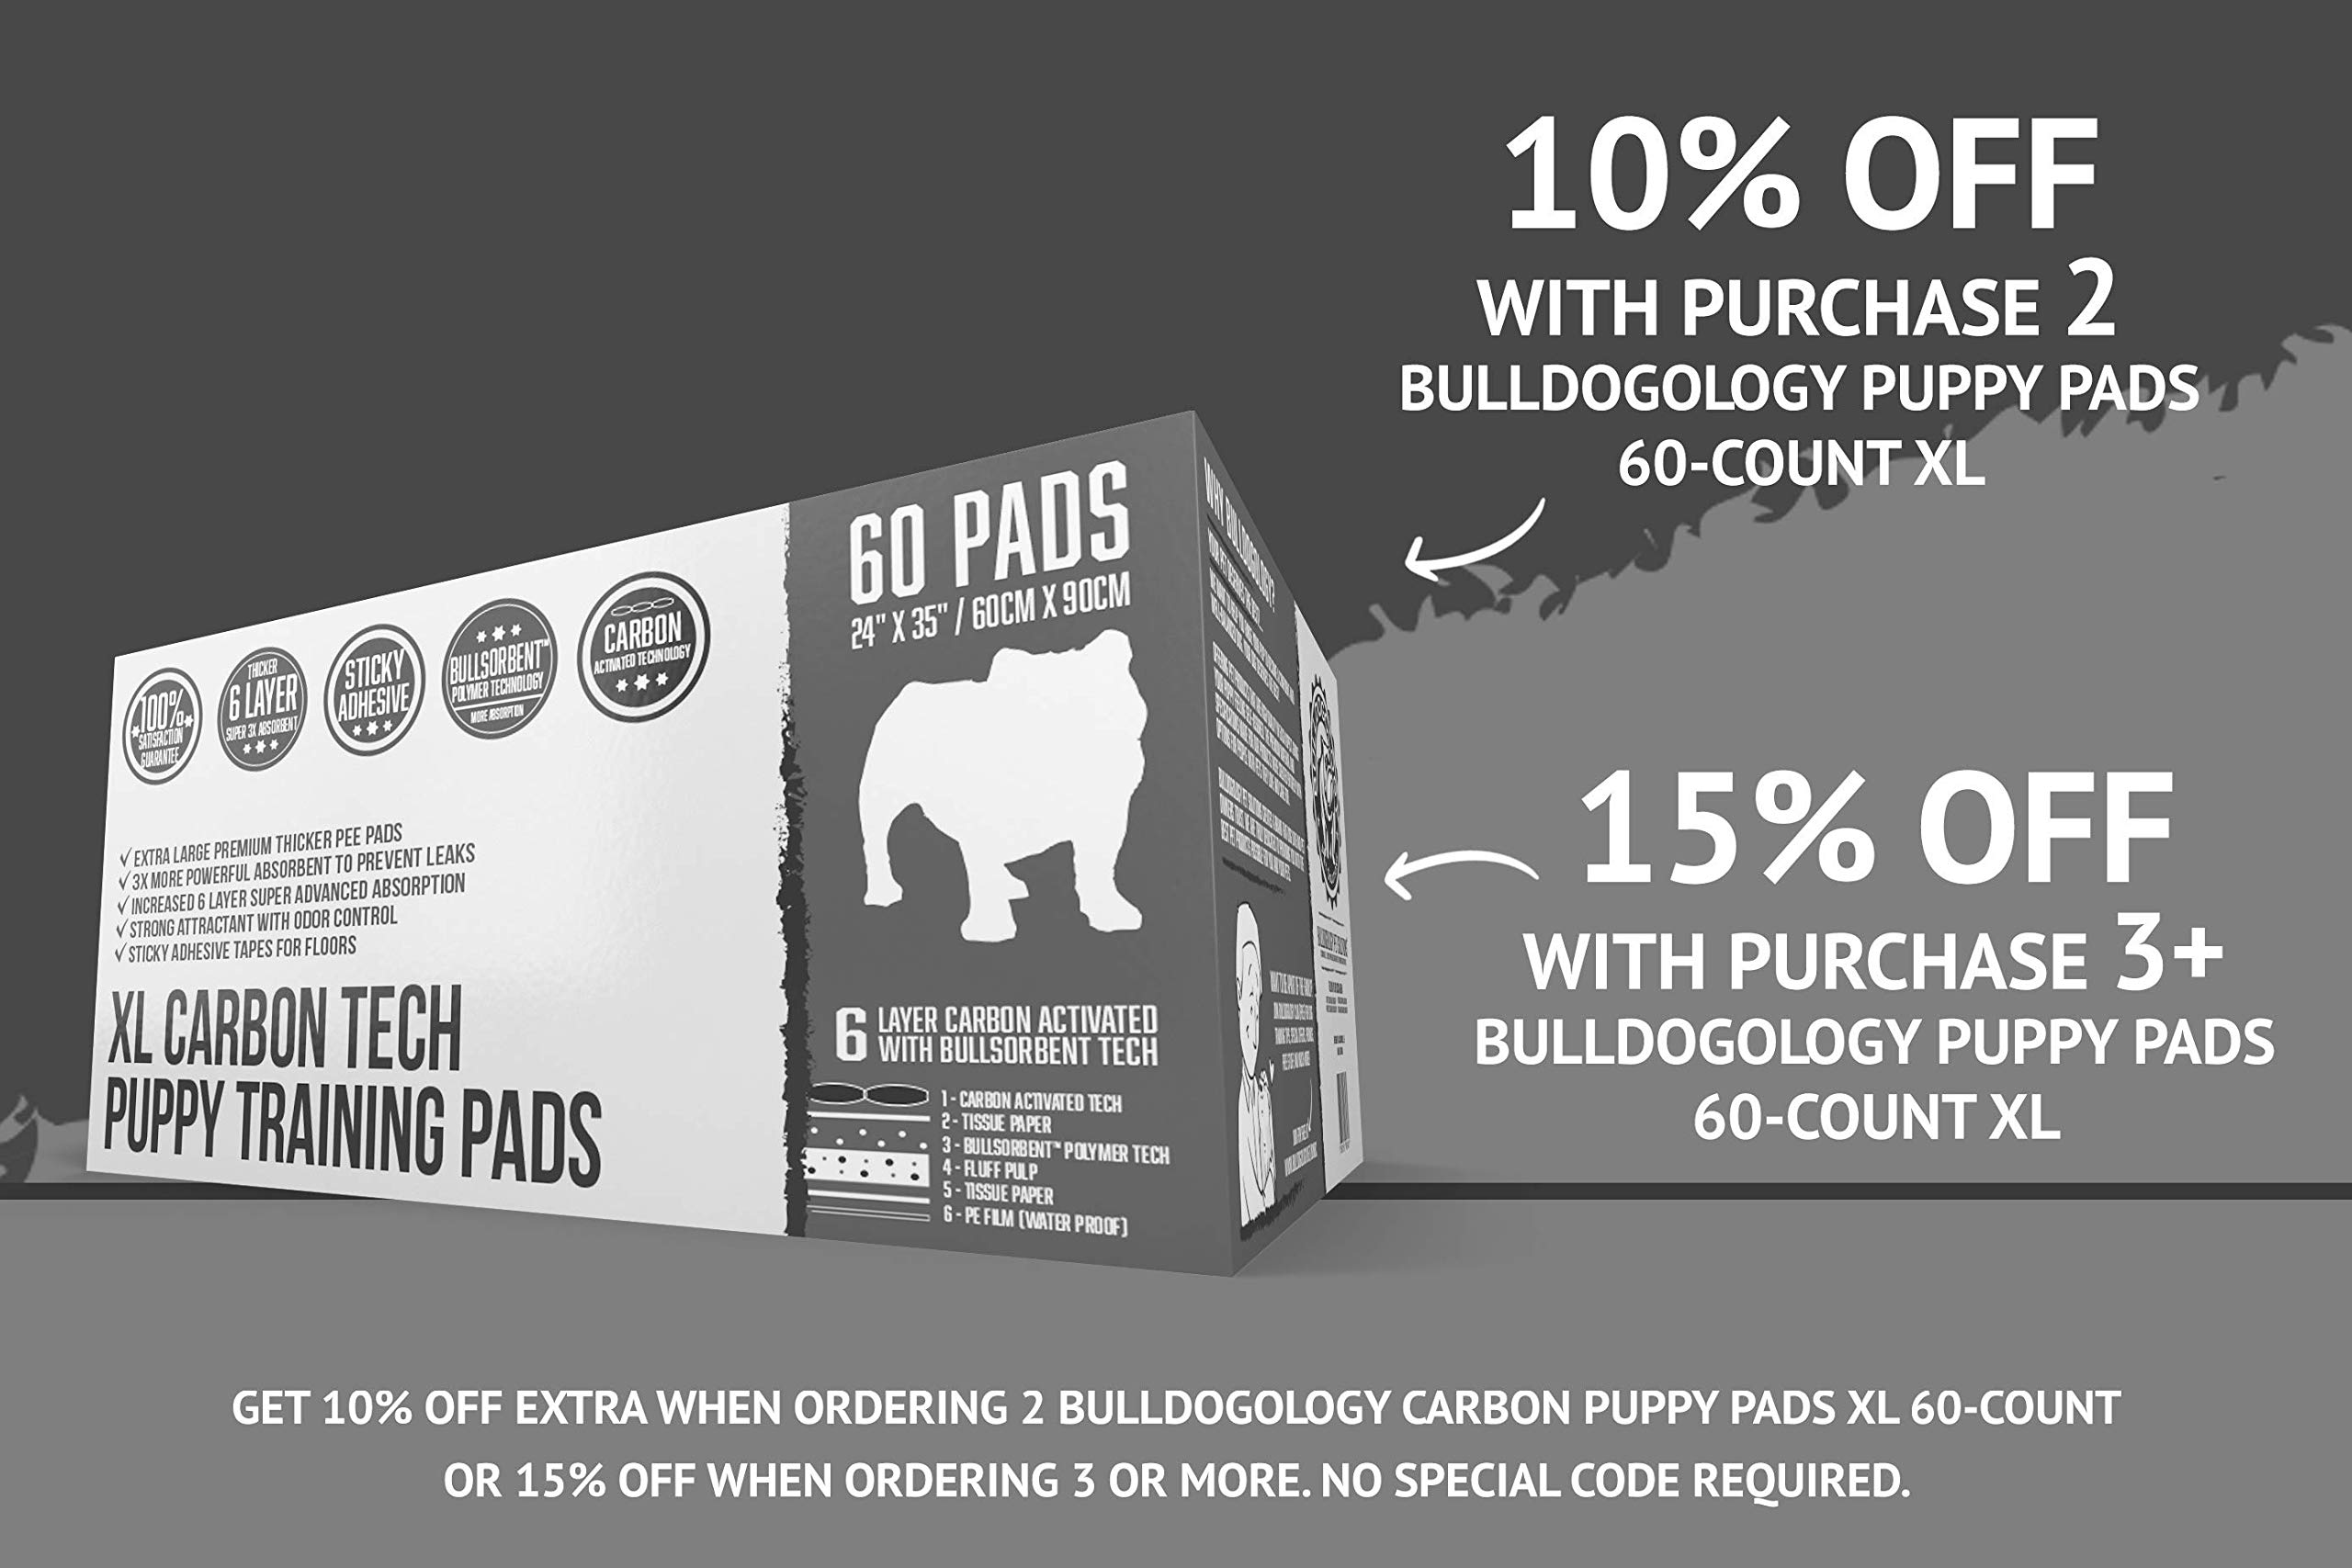 Bulldoglogy Carbon Black Puppy Pee Pads with Adhesive Sticky Tape - Extra Large Housebreaking Dog Training Wee Pads (24x35) 6 Layers with Extra Quick Dry Bullsorbent Polymer (60-Count) by Bulldogology